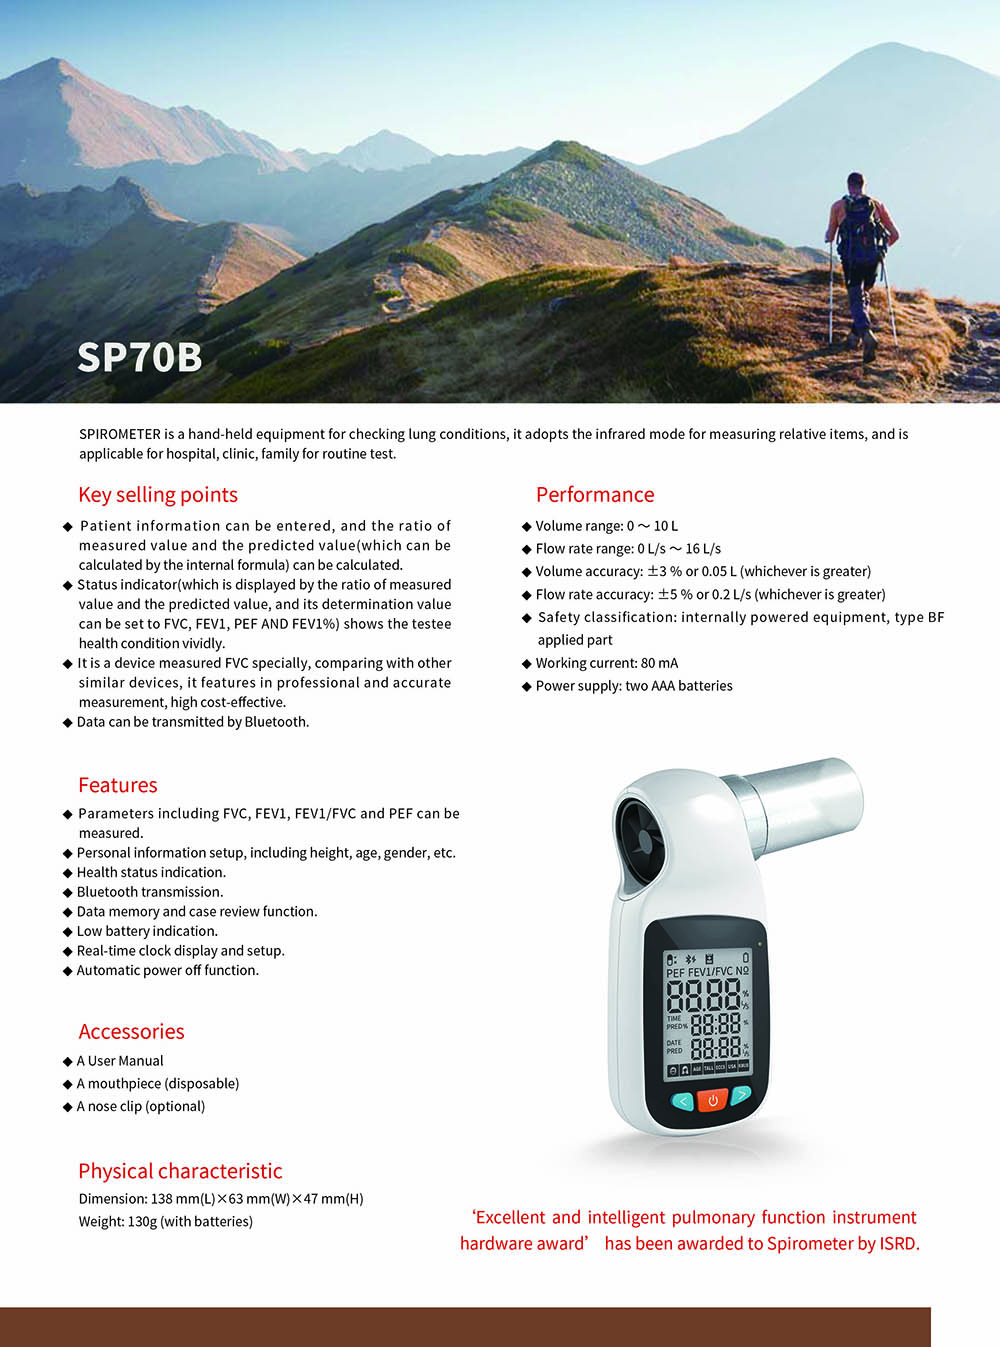 SP70B Spirometer Smart Health Care Product - White